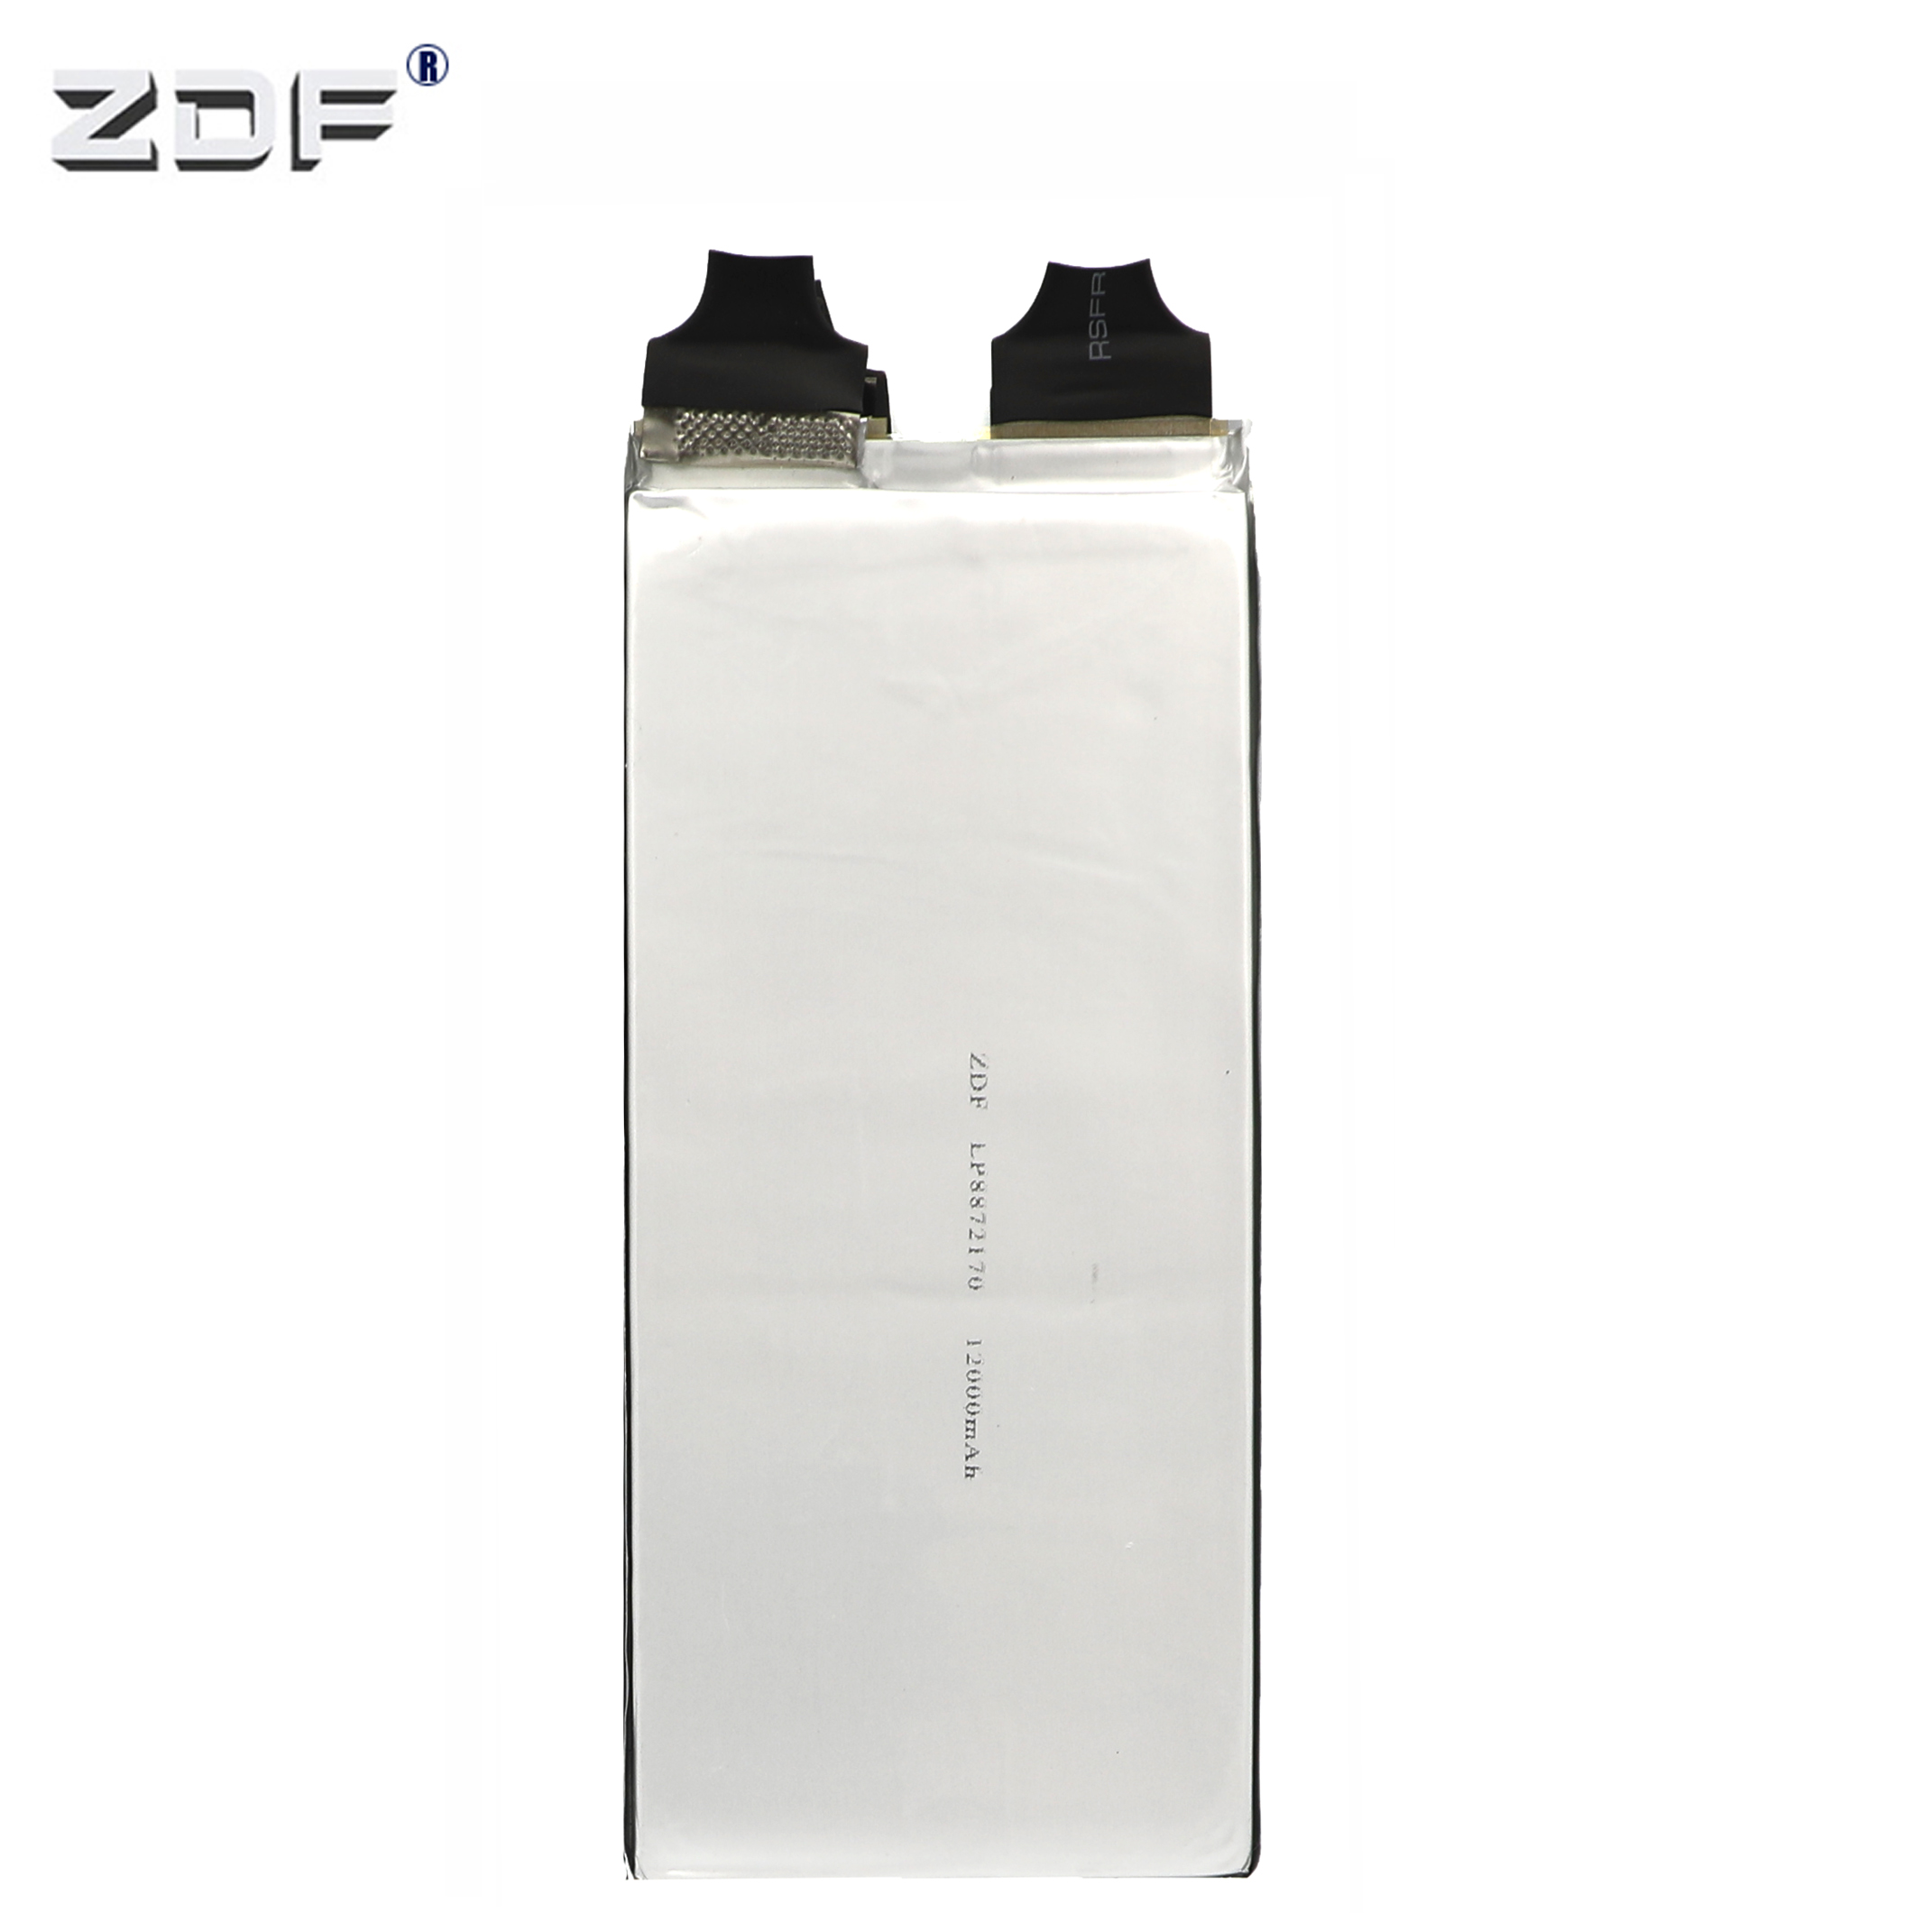 ZDF <font><b>Lipo</b></font> Battery Cell 3.7V <font><b>12000mah</b></font> 10C 15C 20C 25C lithium polymer for DIY RC Drone 2S 7.4V <font><b>3S</b></font> 11.1V 4S 14.8V 6S 22.2V Power image